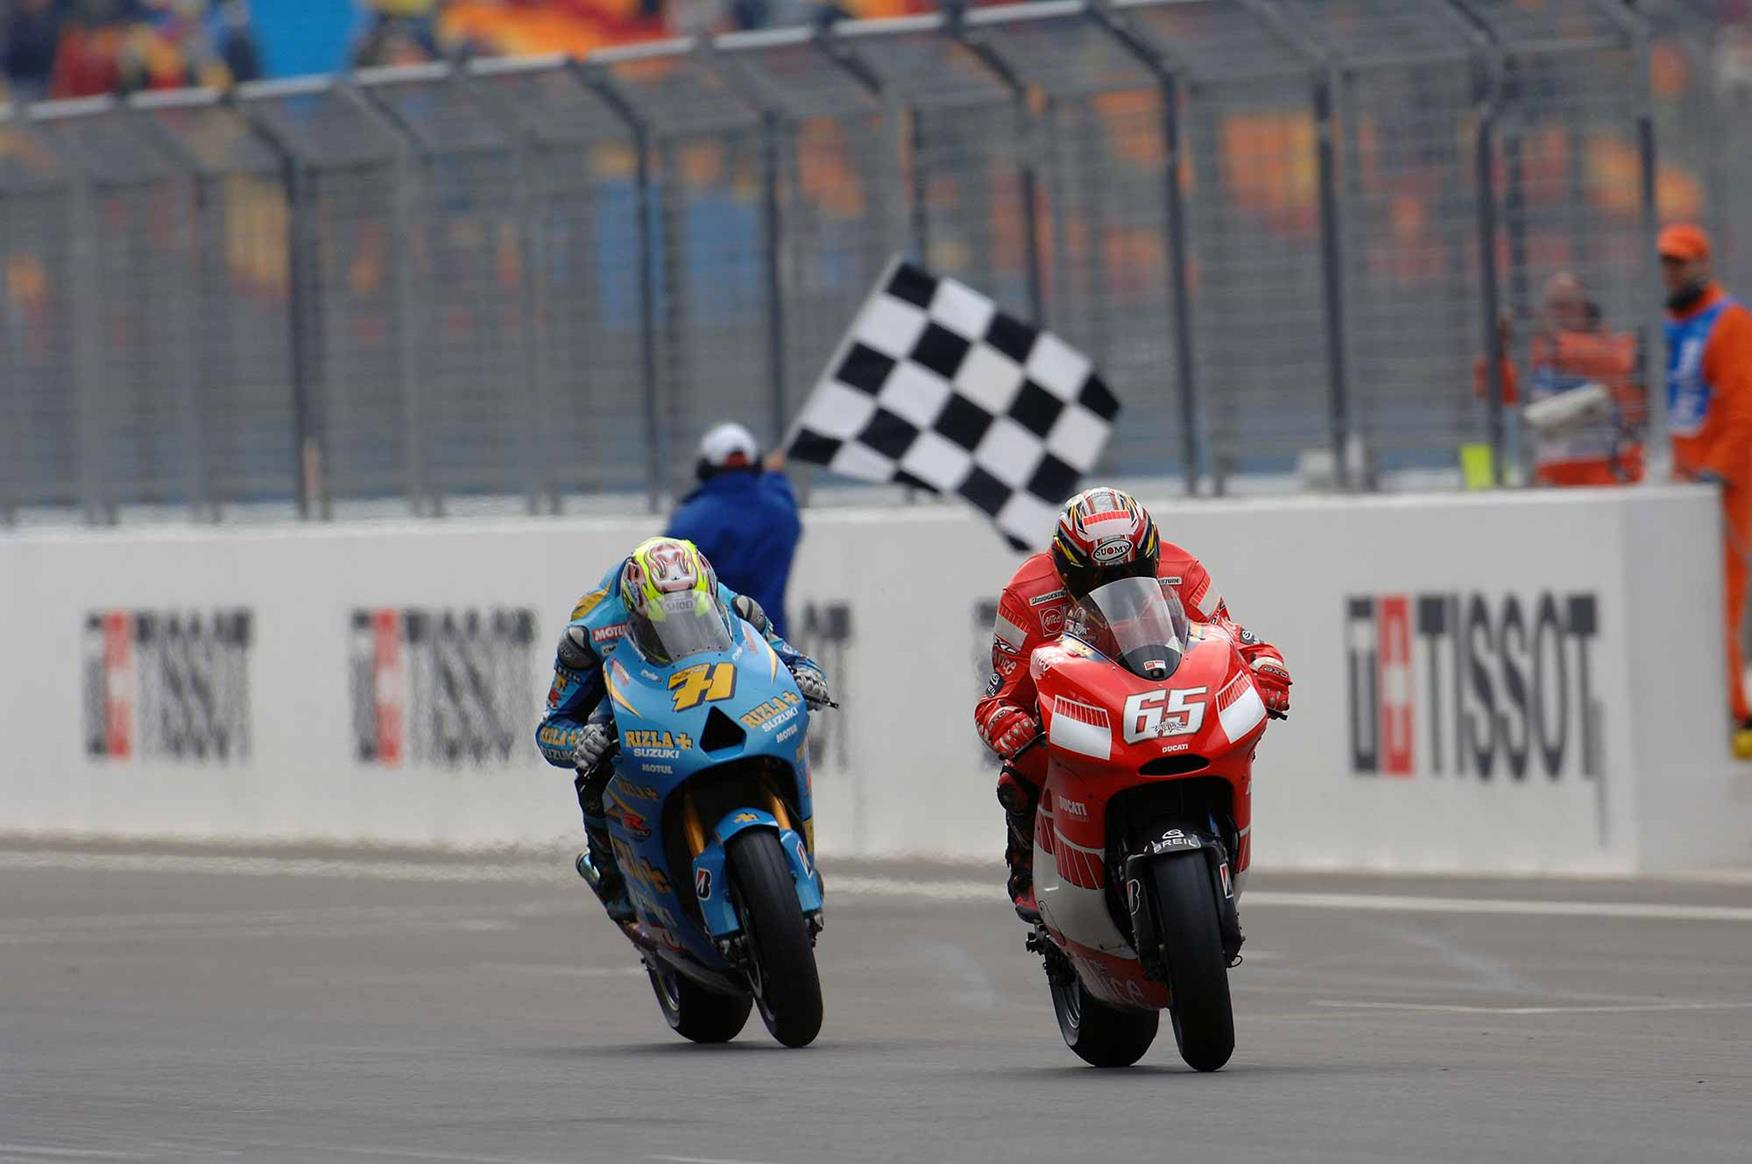 Following the Ducati of Capirossi across the line